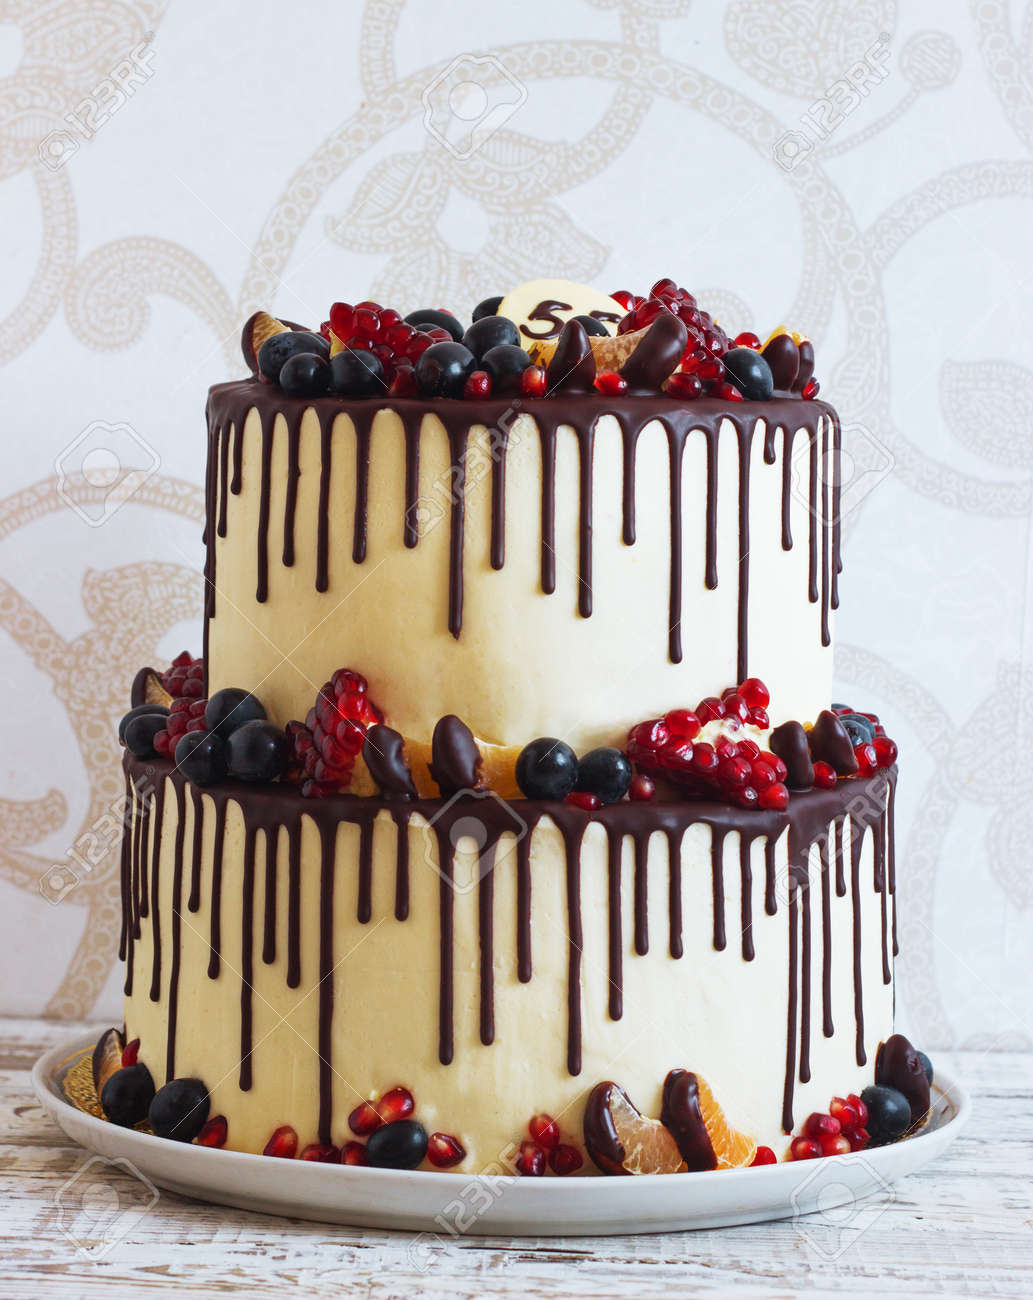 Festive Two Tier Cake With Fruit With Streaks Of Chocolate On Stock Photo Picture And Royalty Free Image Image 66001498